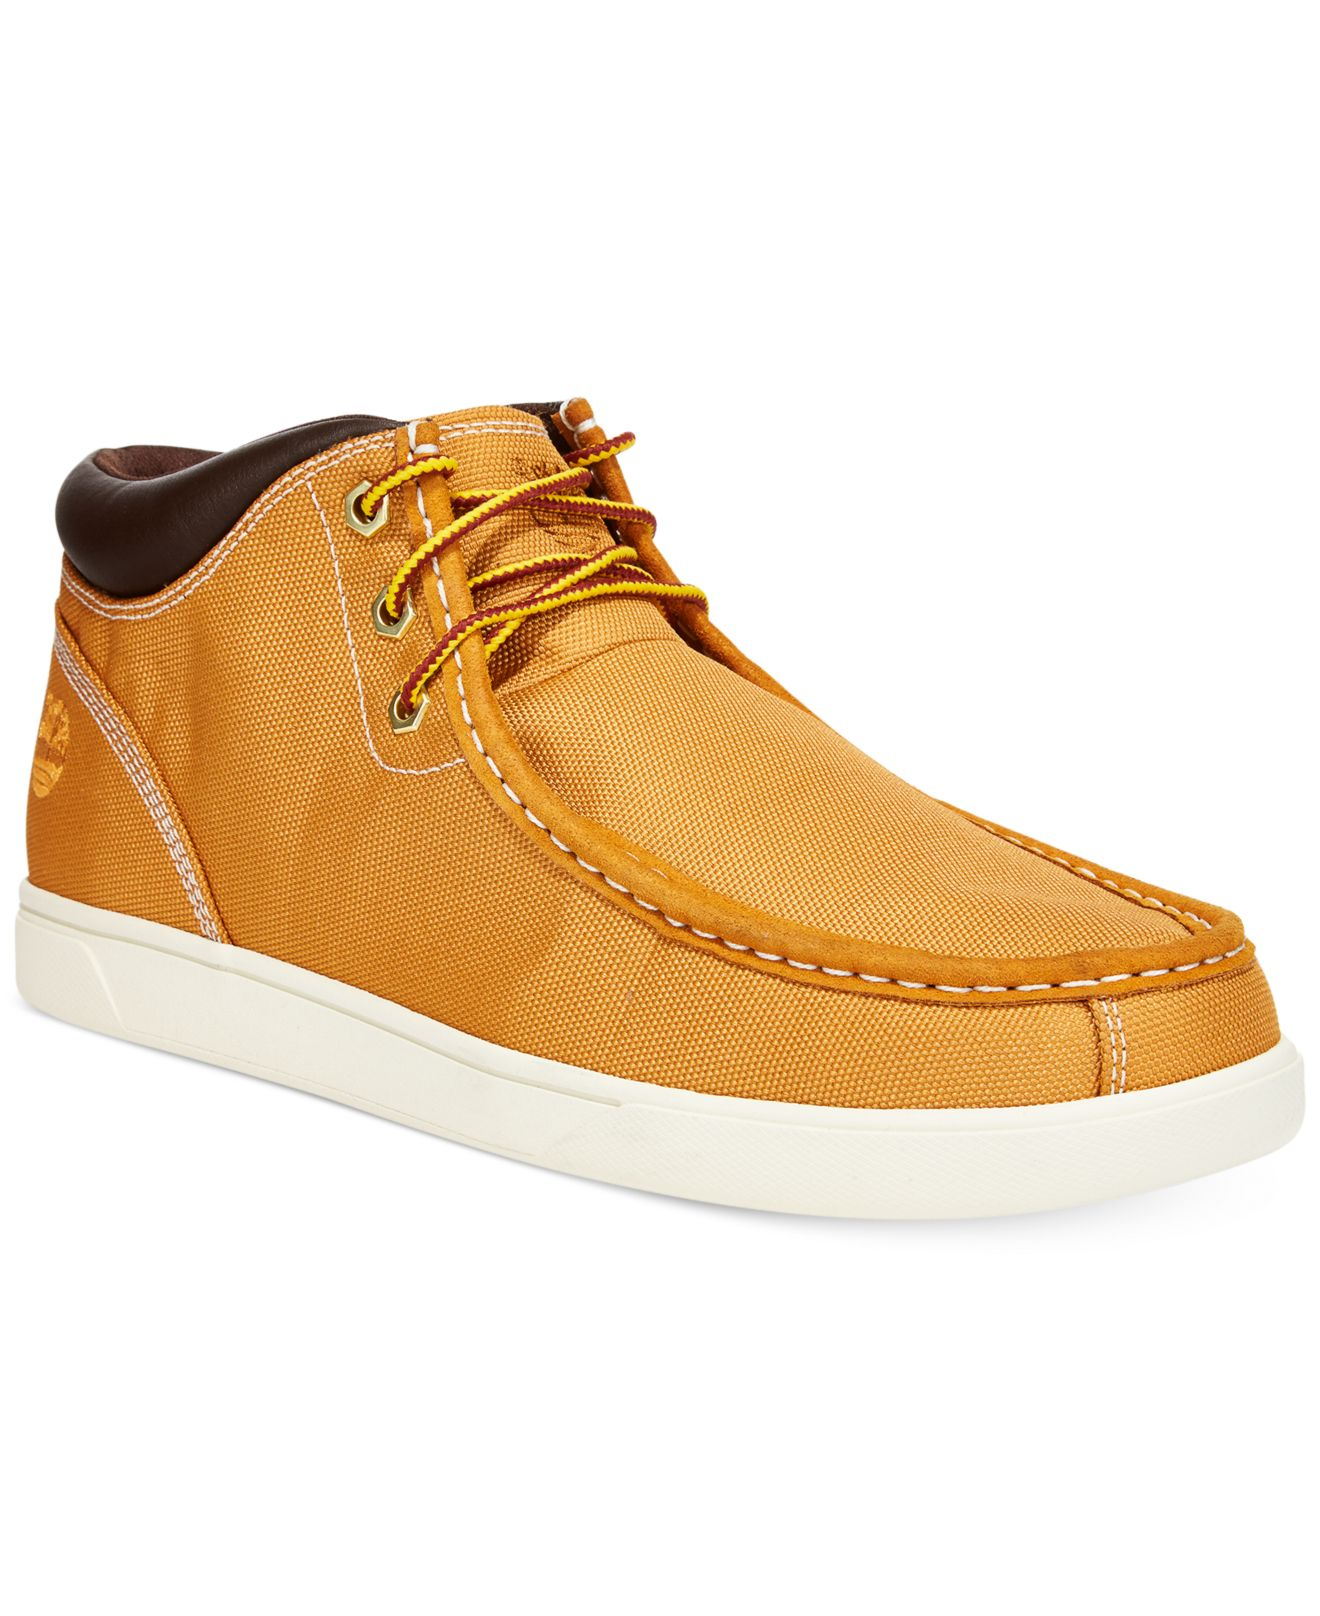 Timberland Mens Moccasin Shoes